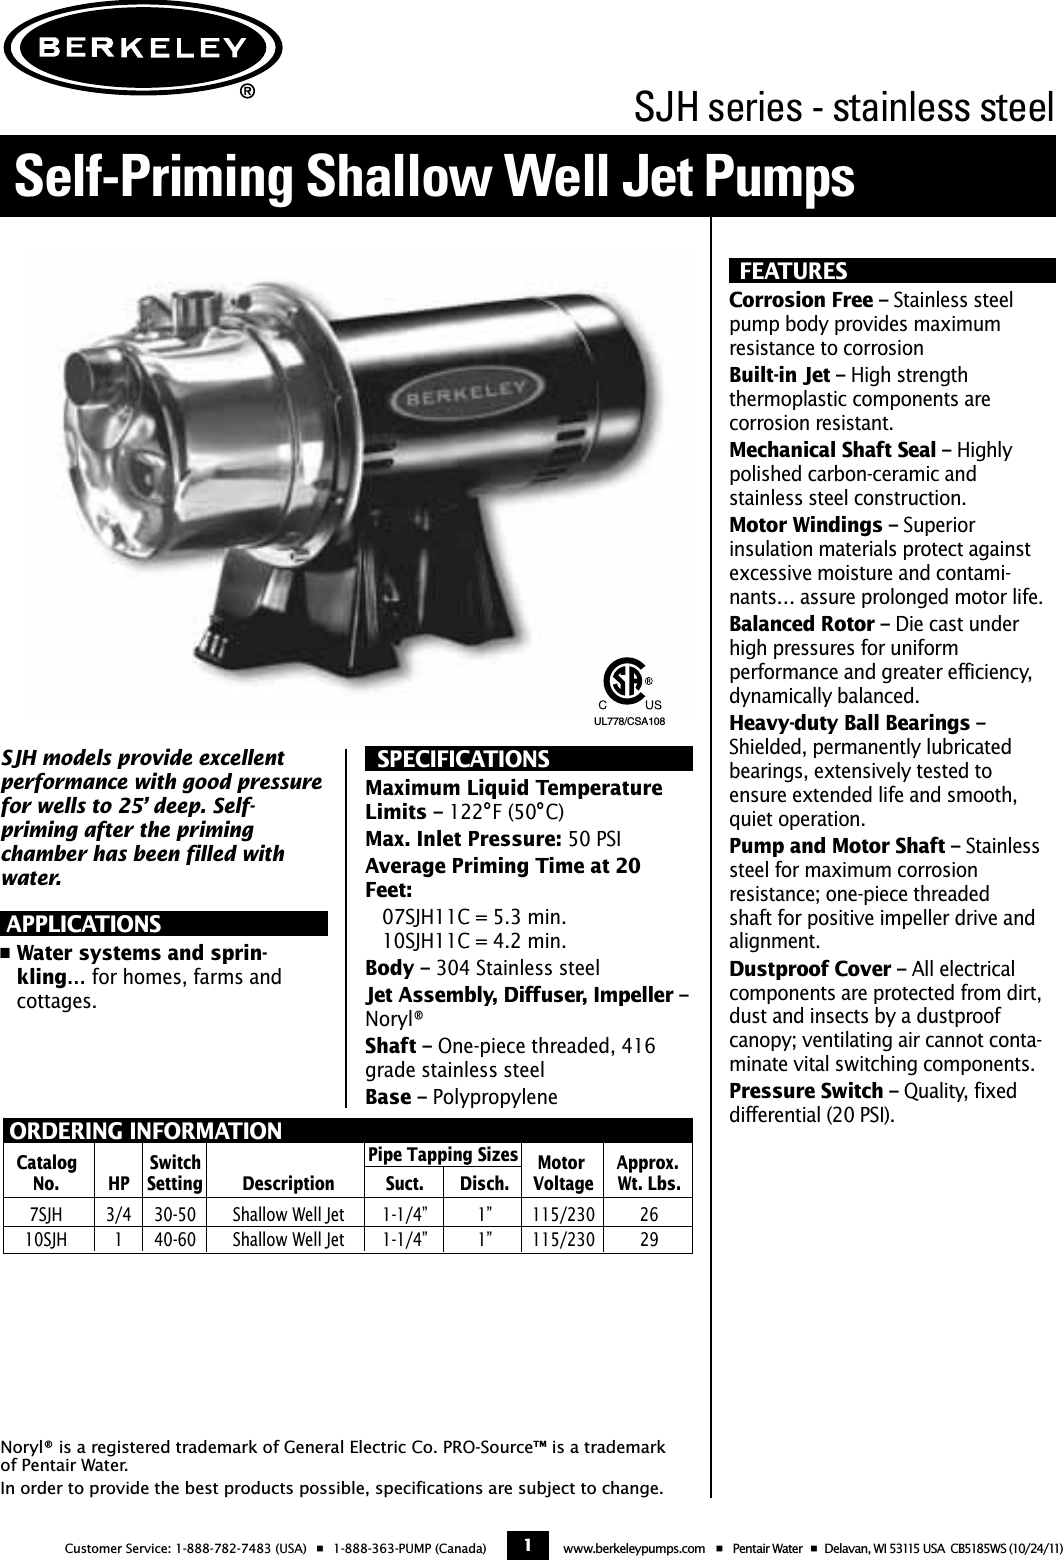 49015 1 Berkeley 10sjh11c Brochure User Manual How Do You Adjust The Pressure Switch On A Well Pump Page Of 2